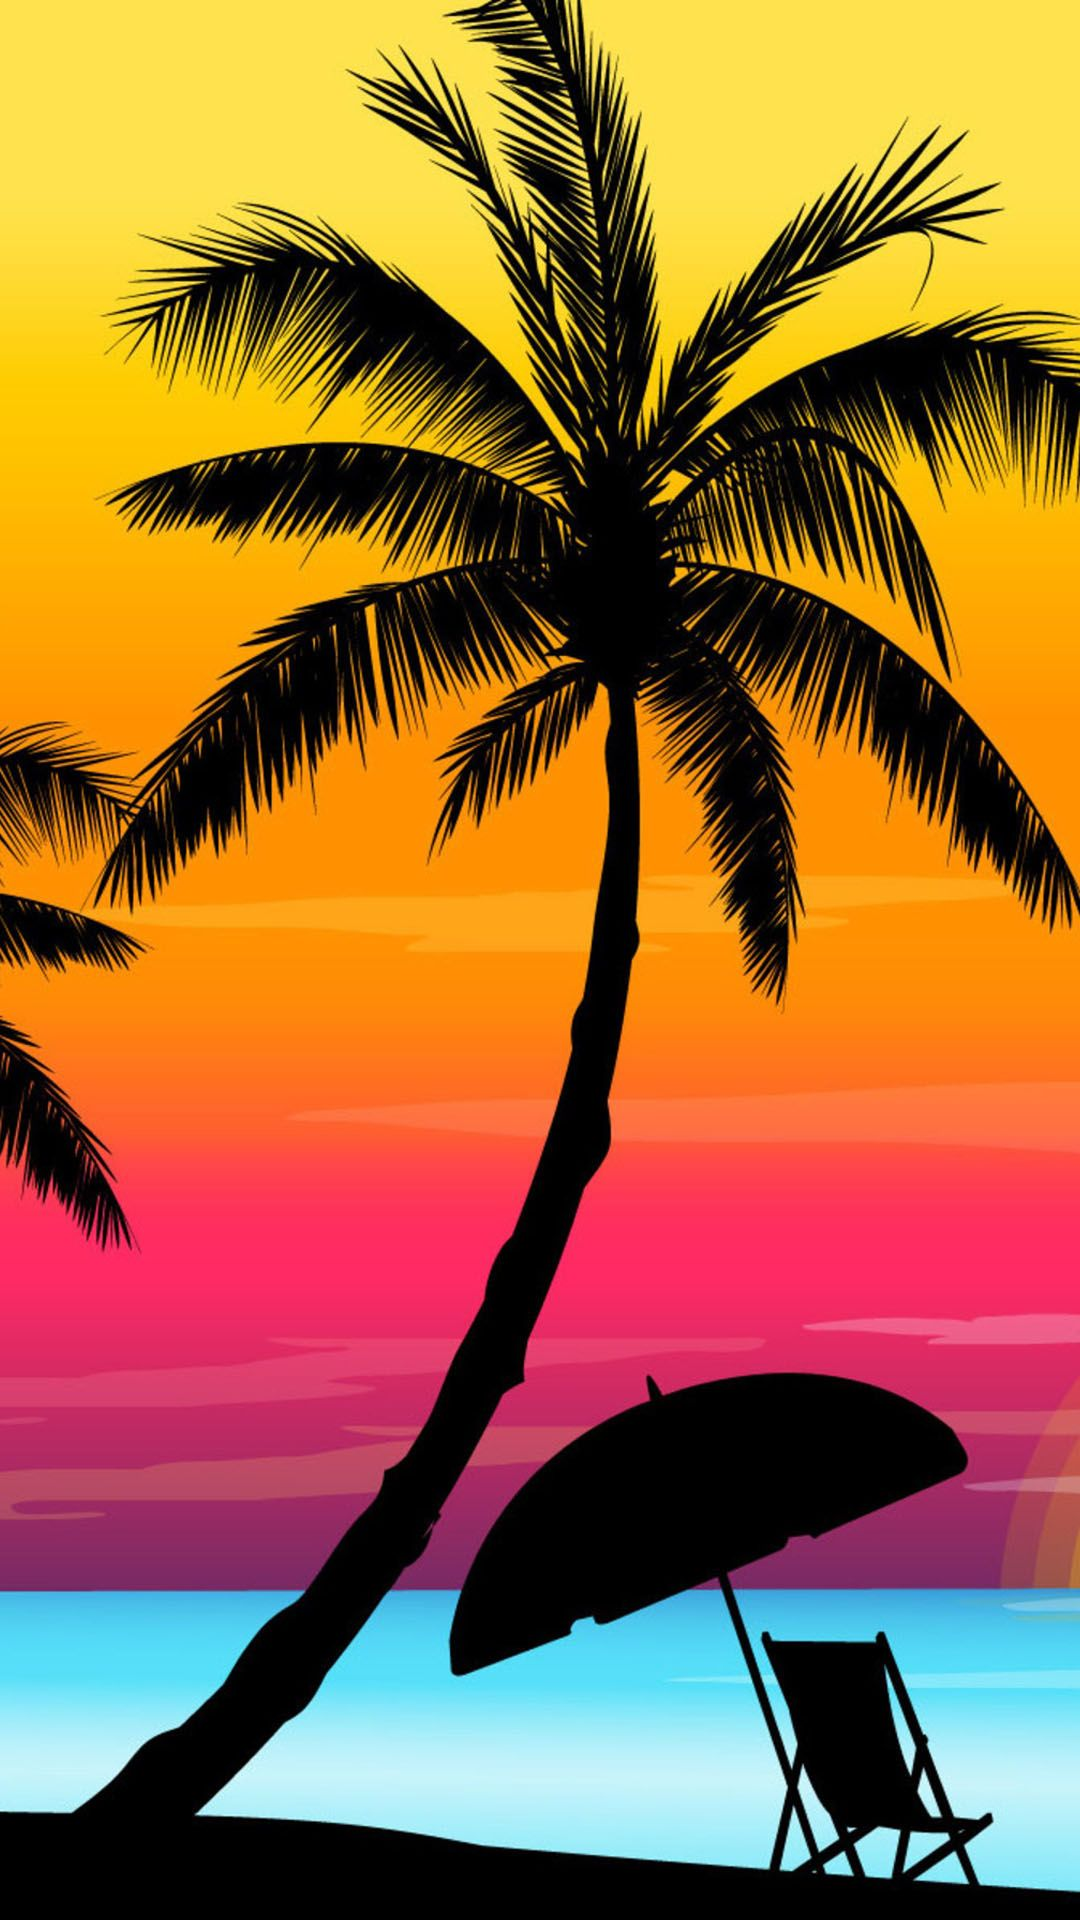 download colorful beach sunset silhouette iphone 6 plus hd wallpaper